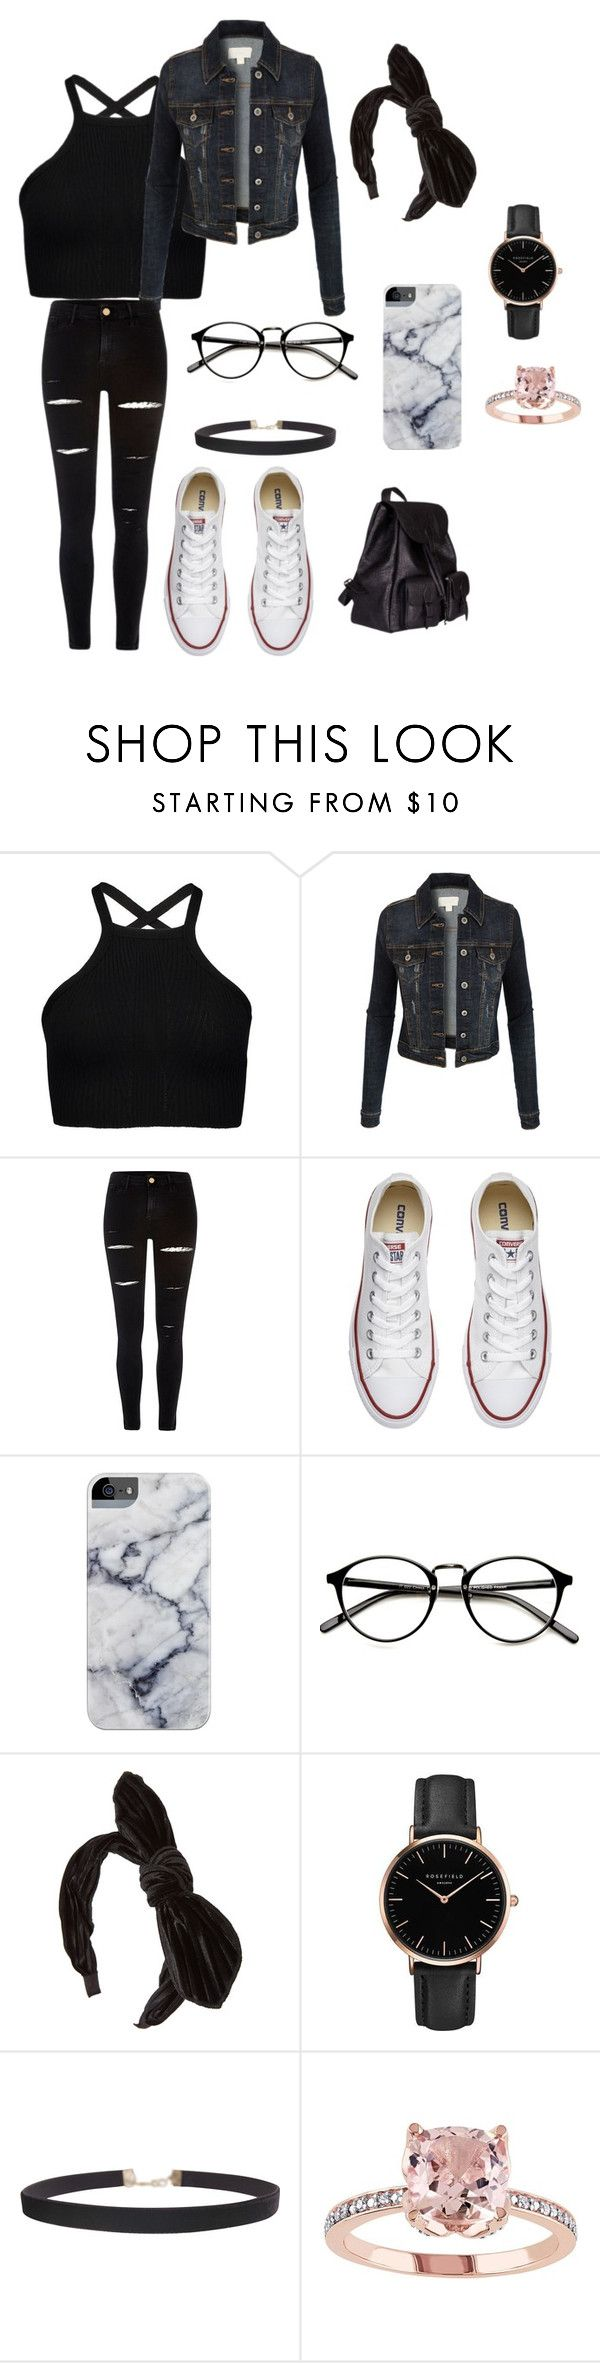 """Everthing!!!!"" by malfoy-granger-weasly ❤ liked on Polyvore featuring LE3NO, River Island, Converse, Topshop, Humble Chic and Yves Saint Laurent"